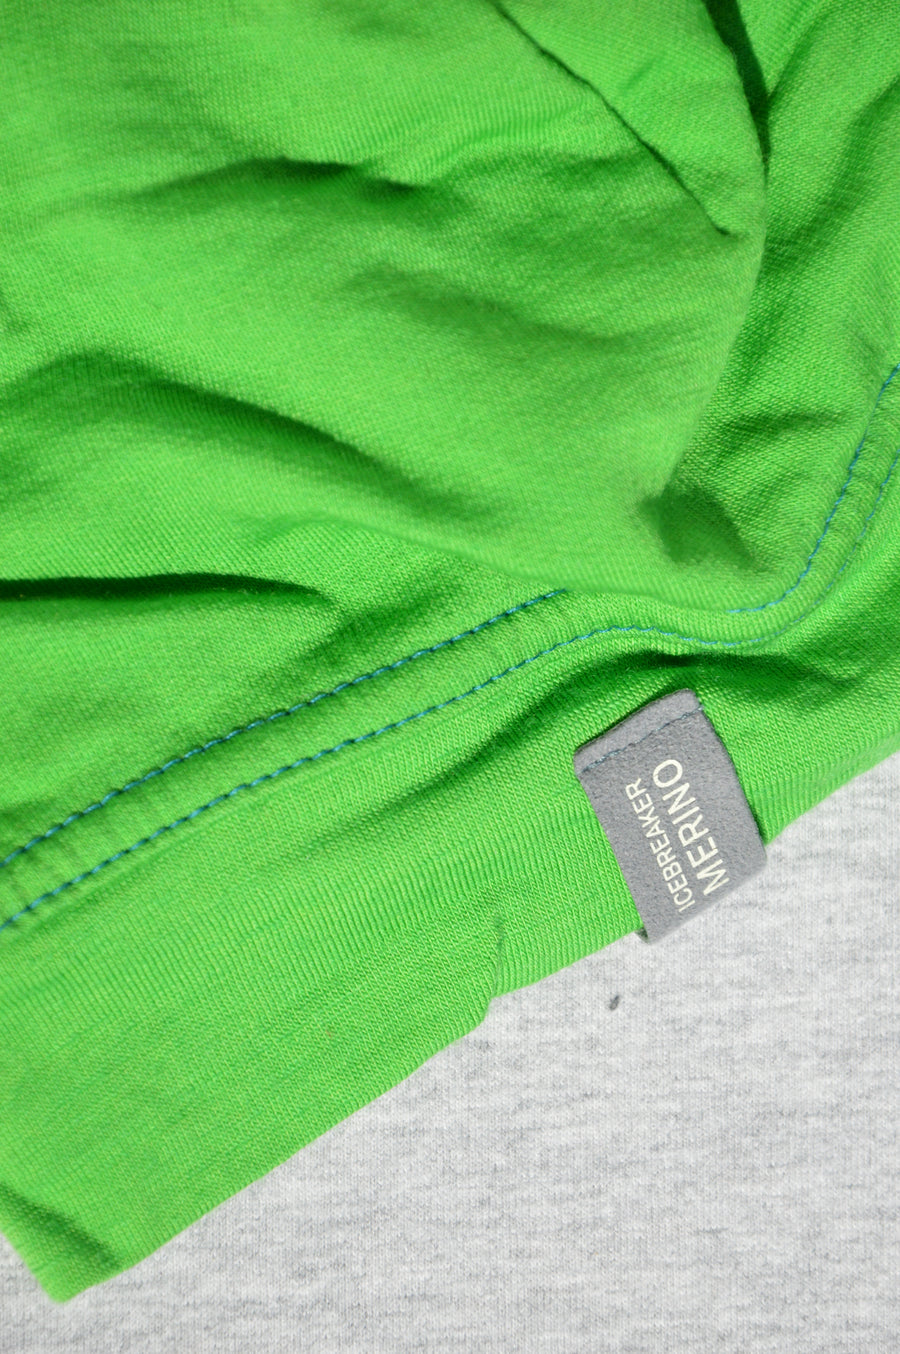 Icebreaker - nearly new - bright green merino beanie, size M (5-7y)